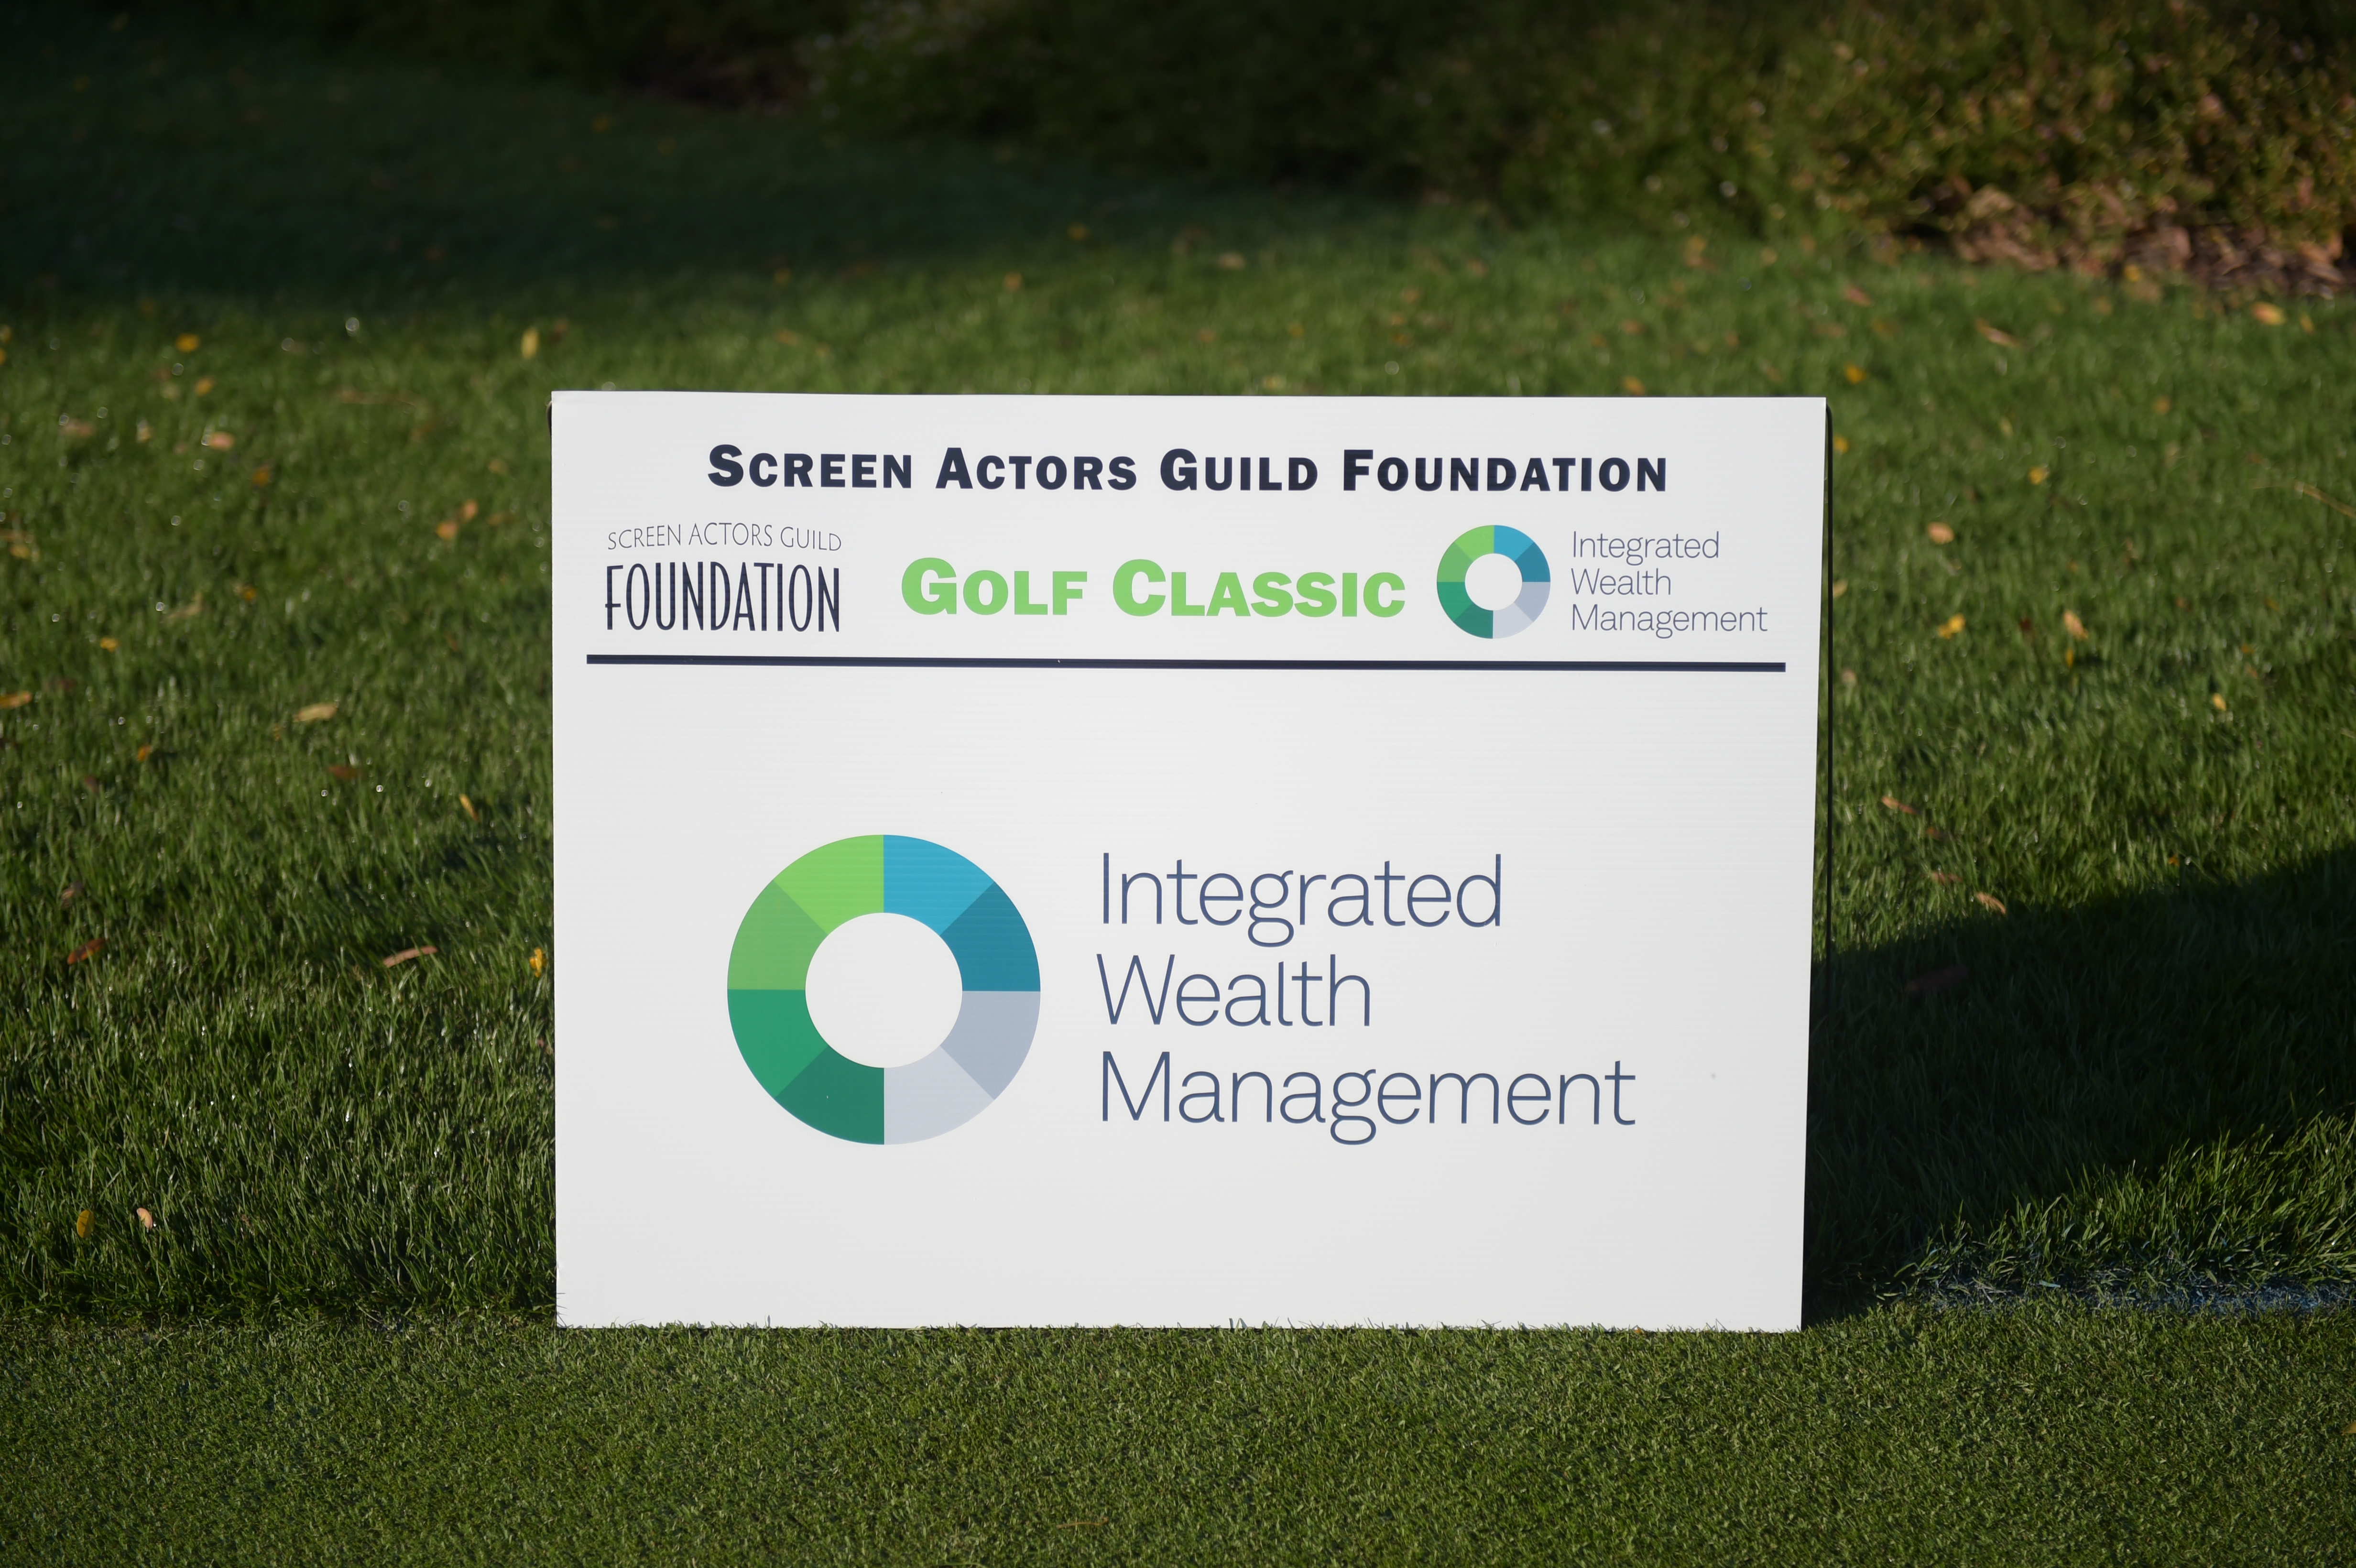 Integrated Wealth Management, sponsor of The Screen Actors Guild Foundation's 6th Annual Los Angeles Golf Classic. (Photo by Jason Kempin/Getty Images for The Screen Actors Guild Foundation)